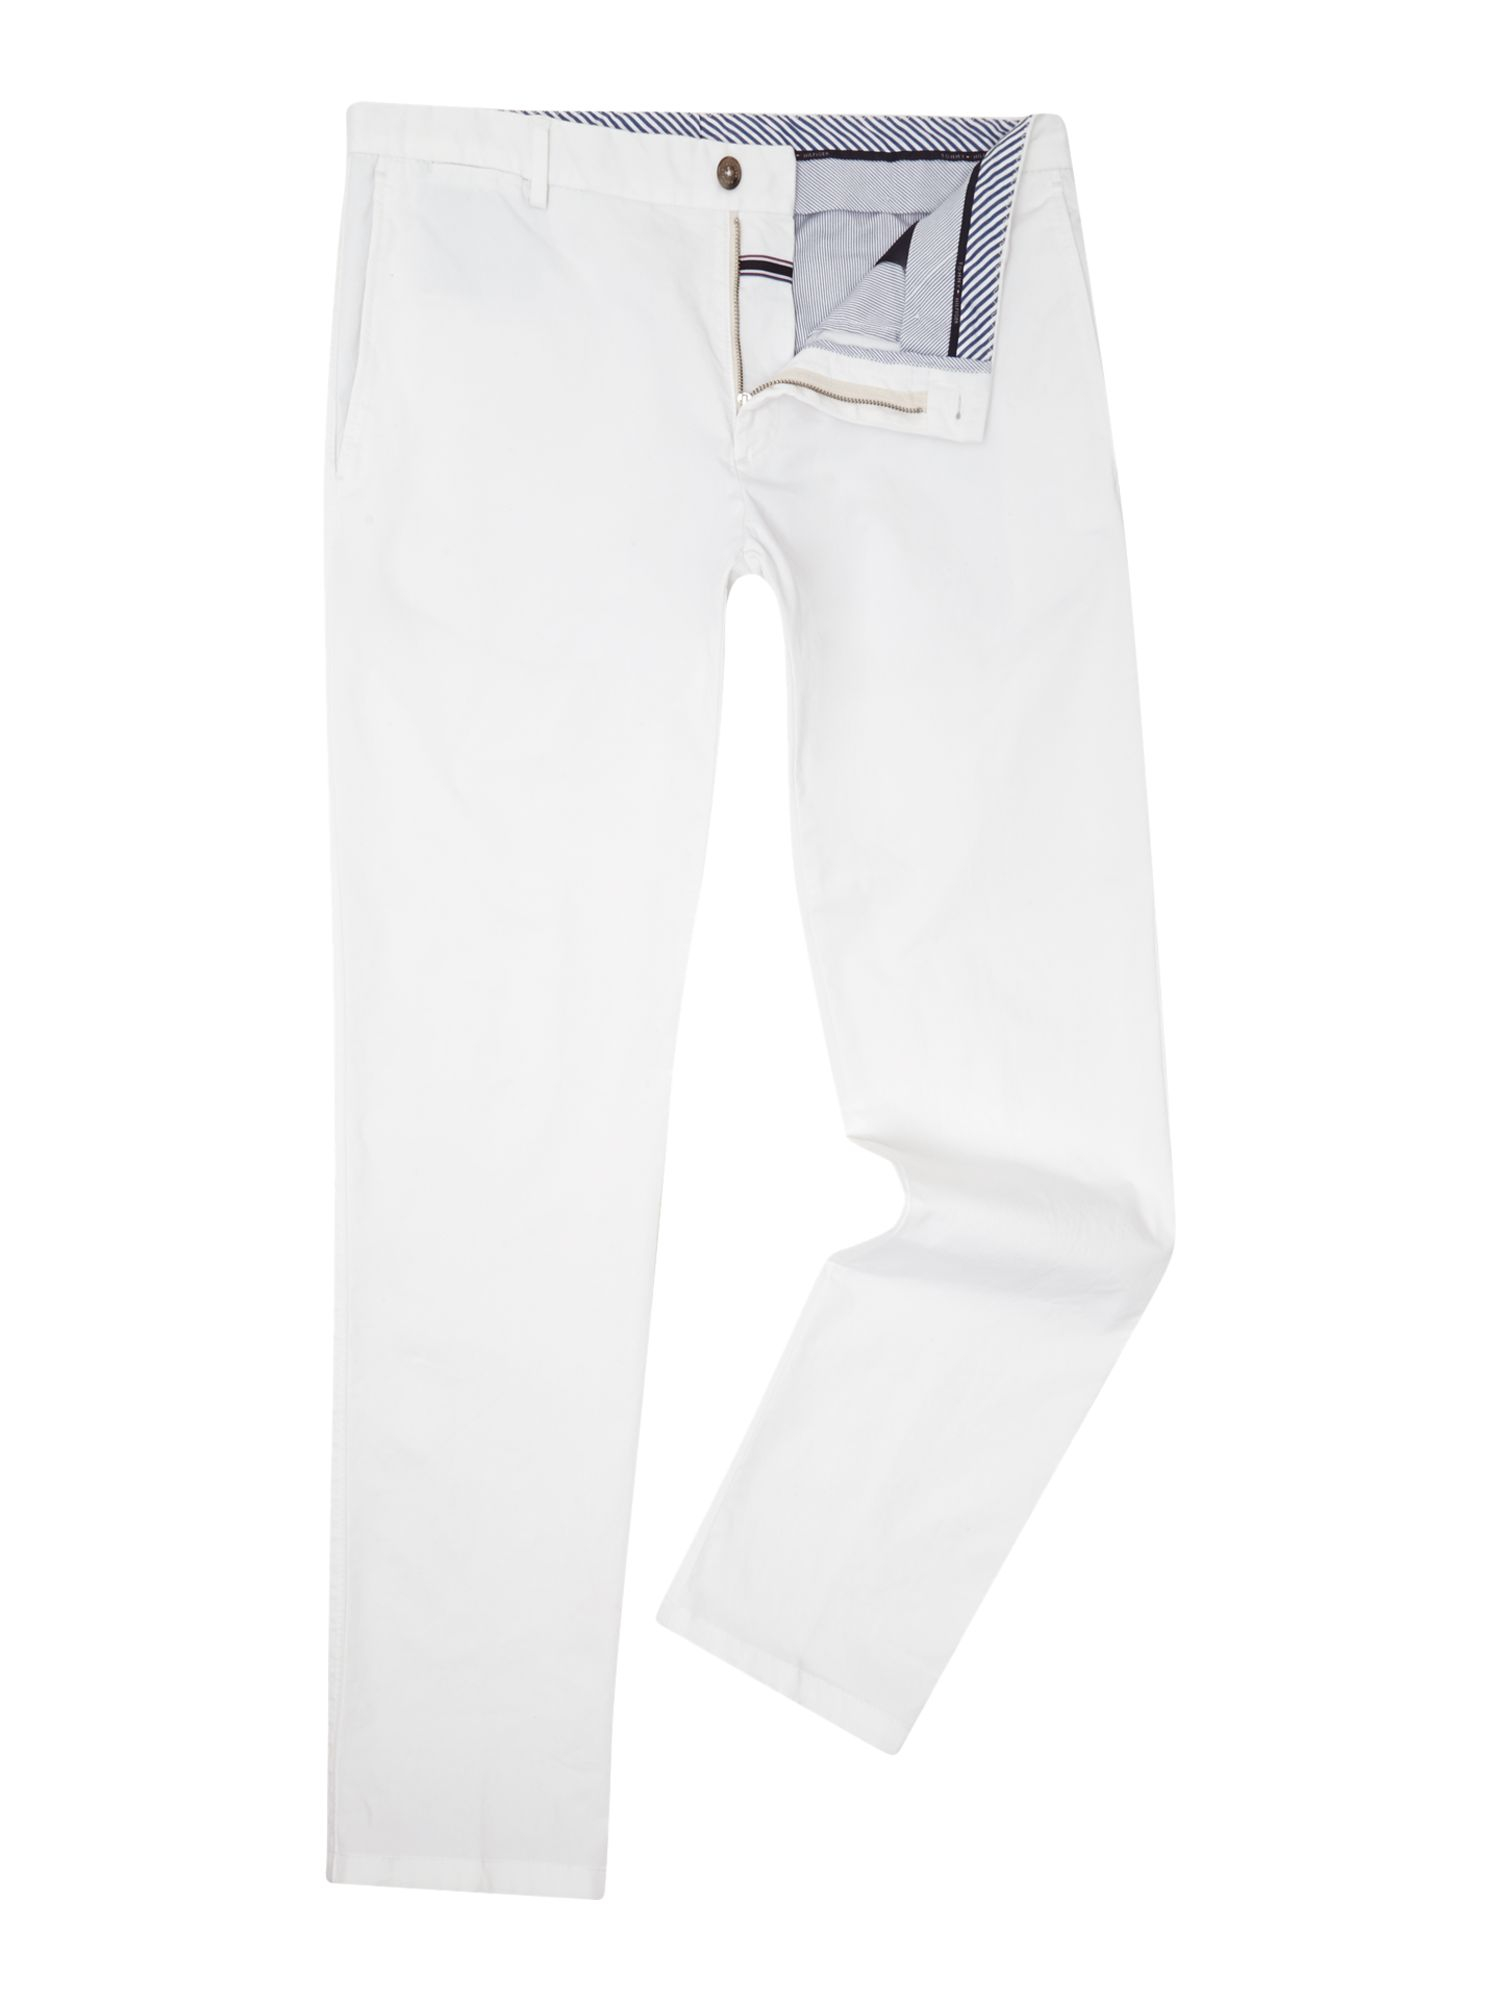 tommy hilfiger william w slim fit chino in white for men. Black Bedroom Furniture Sets. Home Design Ideas